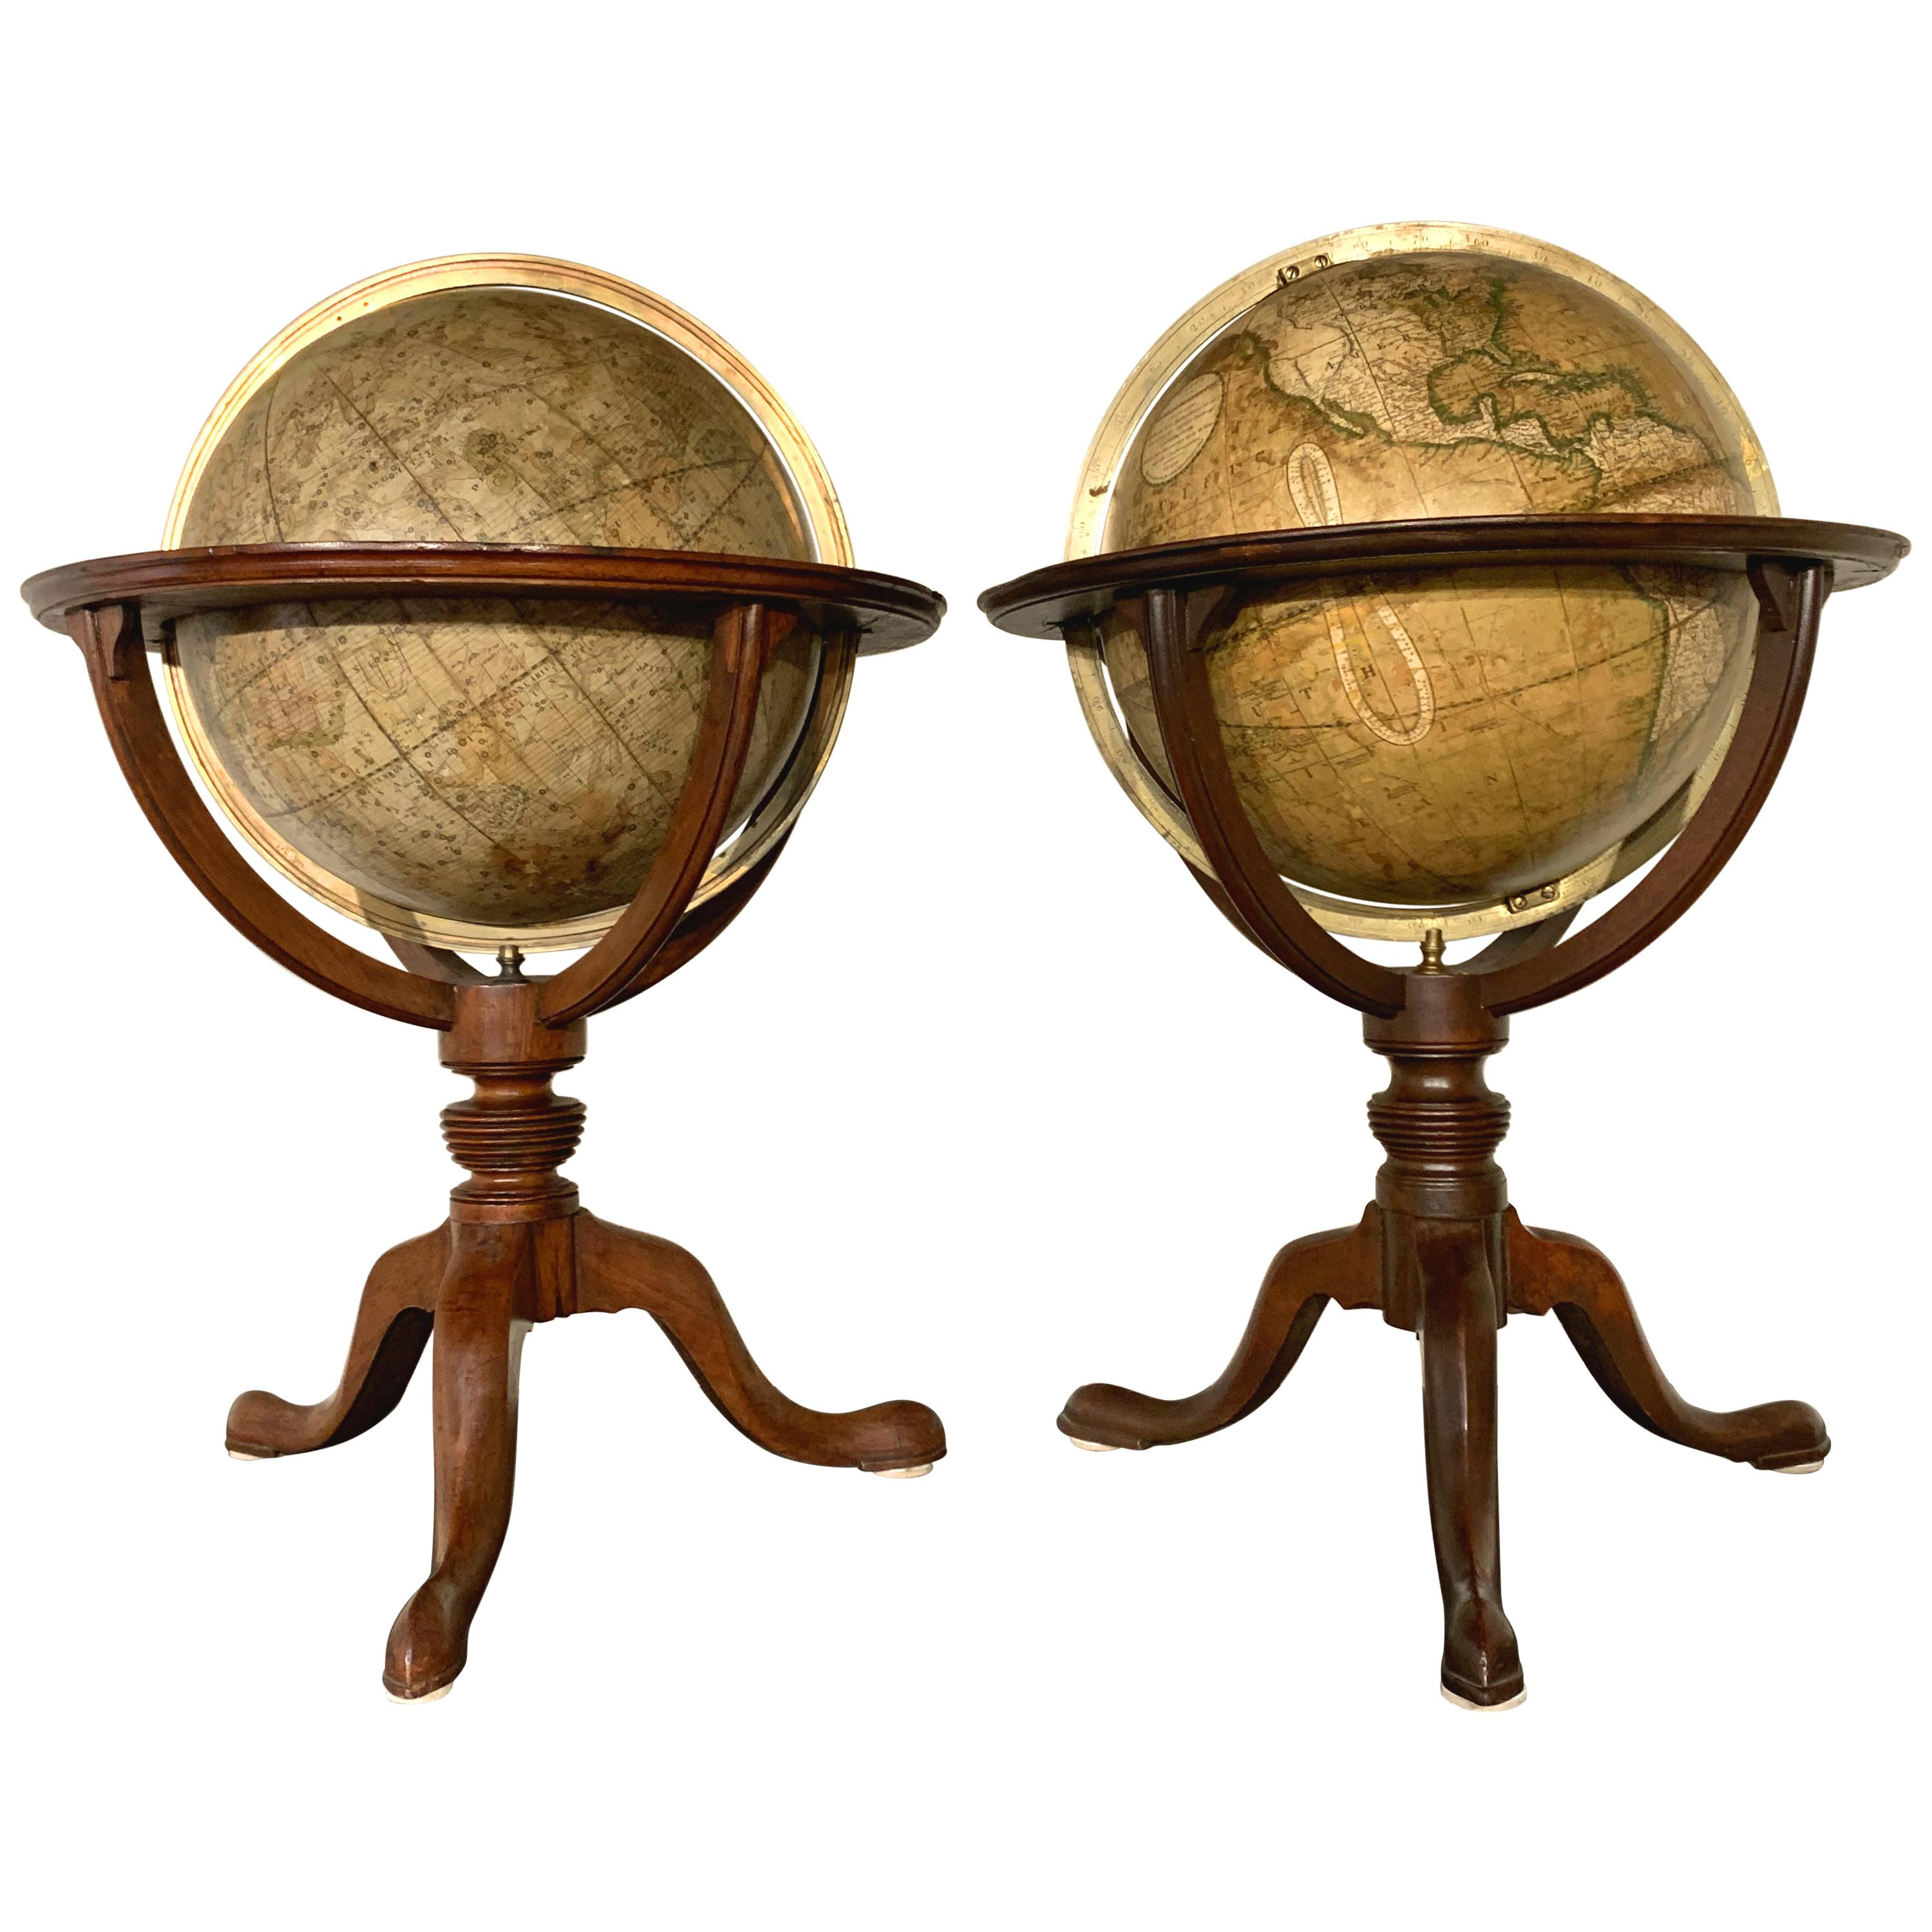 Pair of 19th Century English J & W Cary Celestial/Terrestrial Table Model Globes